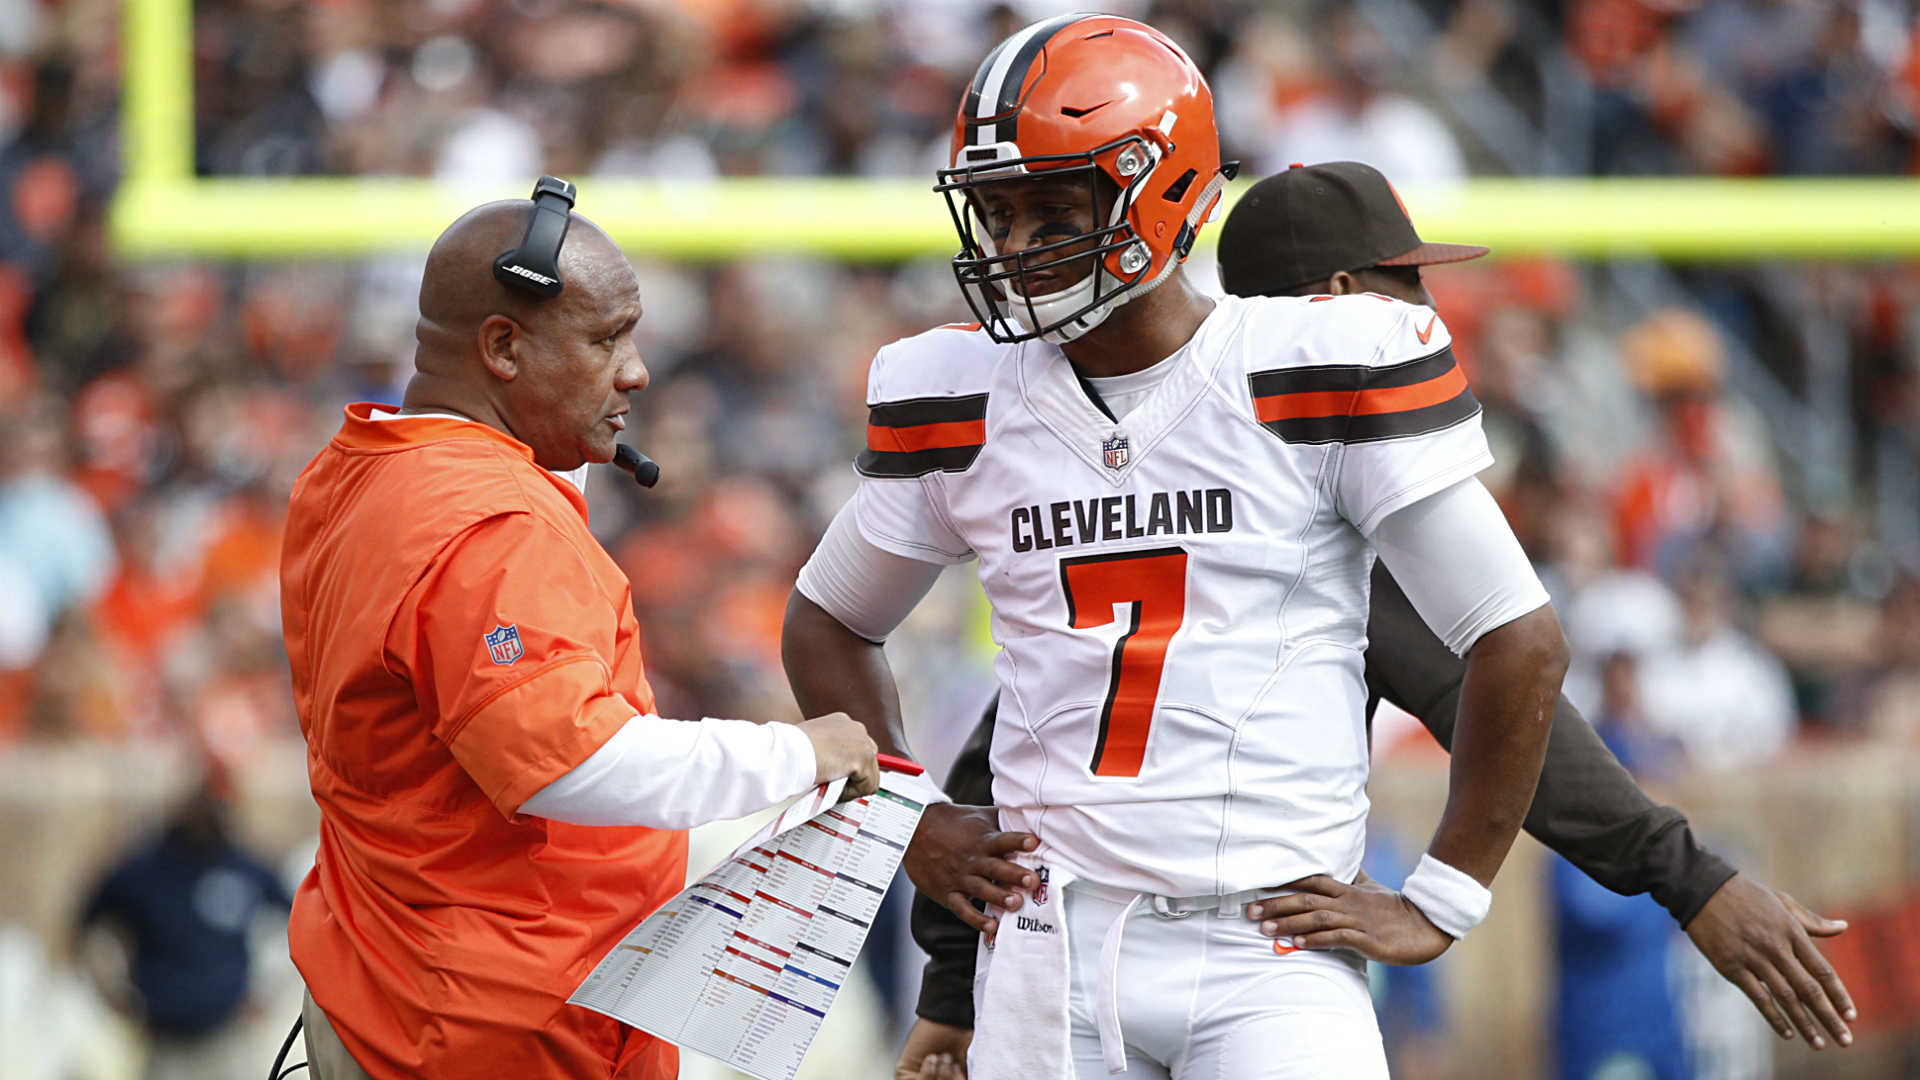 Browns' Myles Garrett starts National Football League career with sack